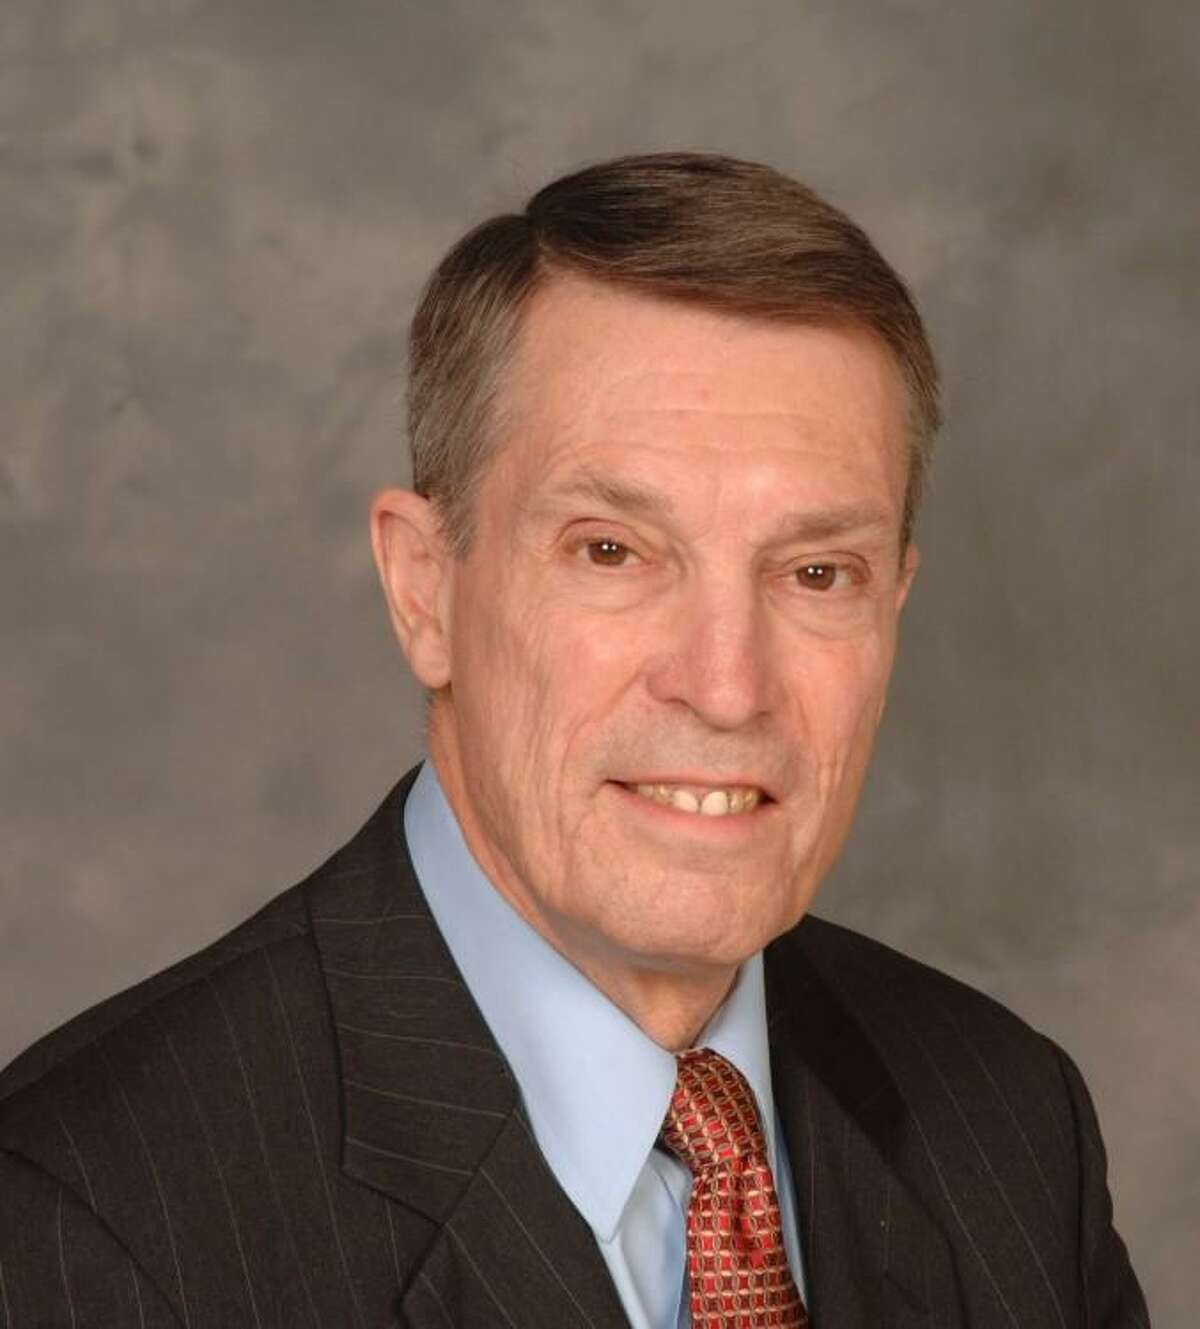 Bill Gilmer, director of the Institute for Regional Forecasting with the Bauer College of Business, University of Houston, will be the speaker at the Annual Economic Forecast Luncheon of the Heights Chamber of Commerce.